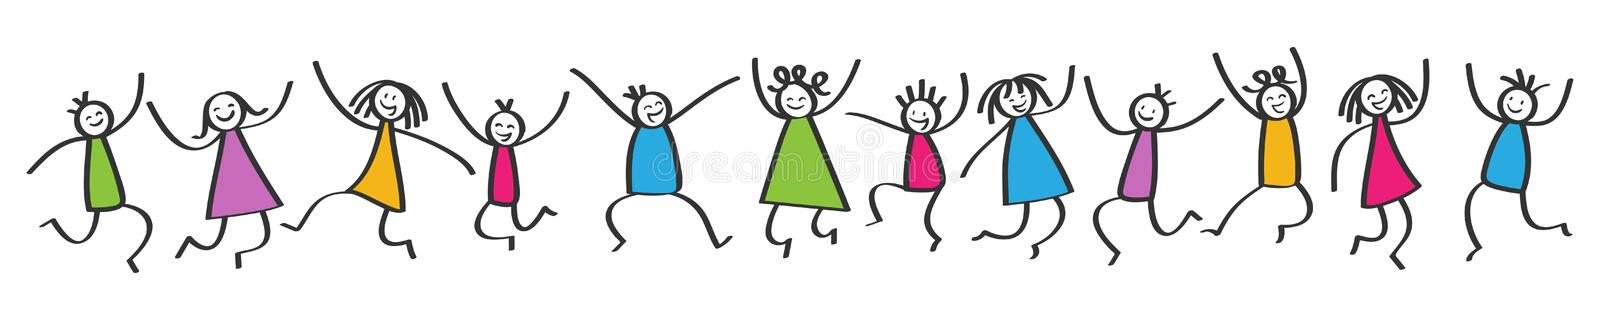 Simple stick figures banner, happy colorful kids jumping, hands in the air stock illustration